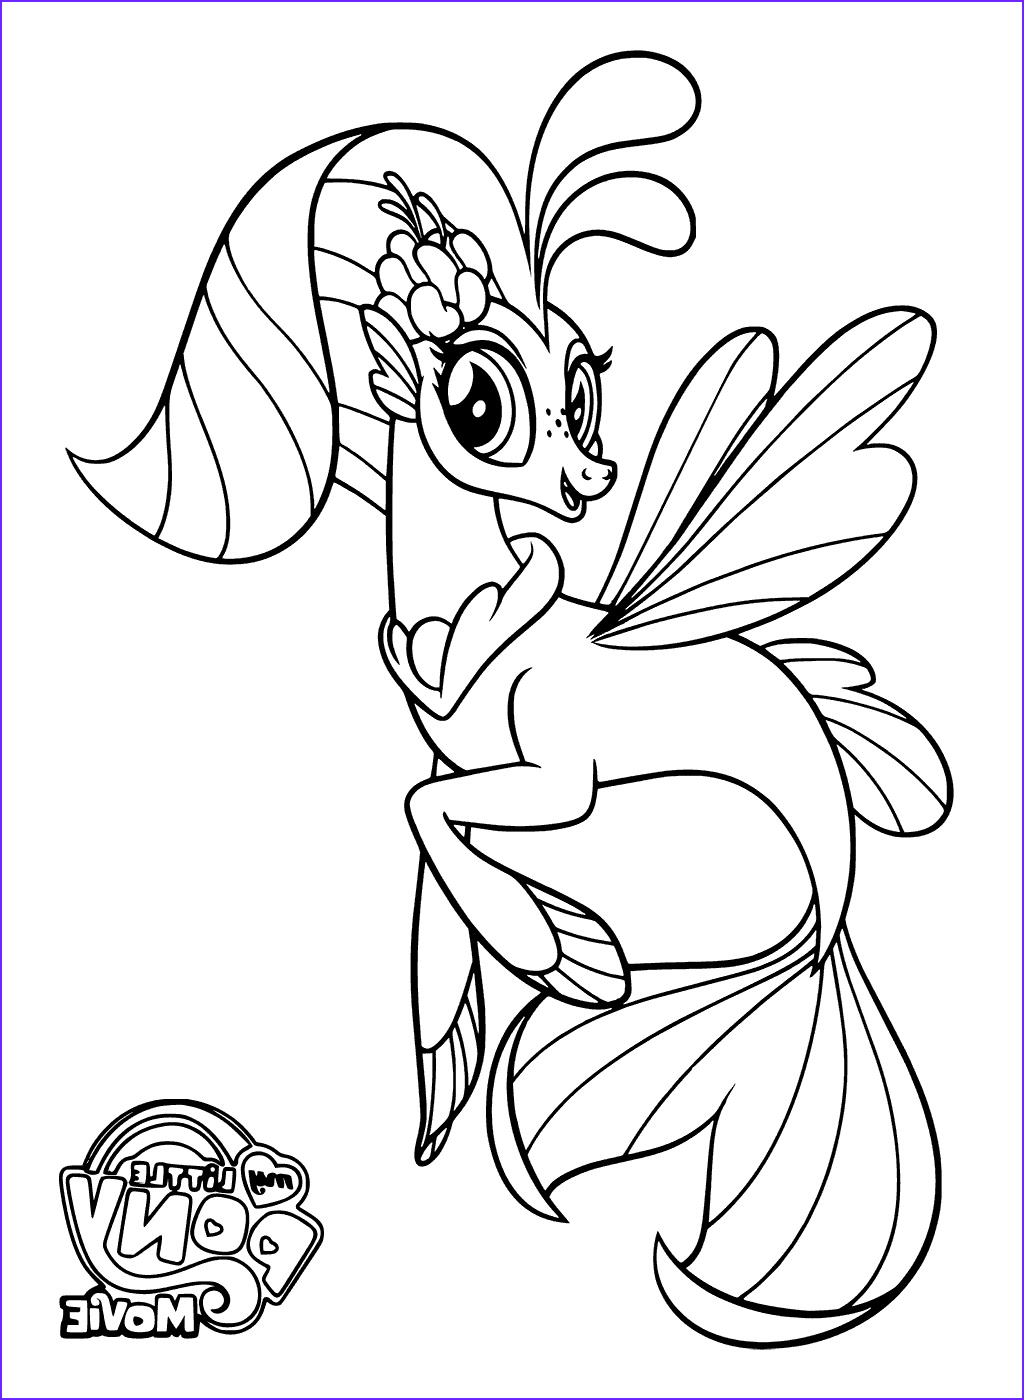 Coloring Pages My Little Pony Awesome Photos My Little Pony the Movie Coloring Pages to and